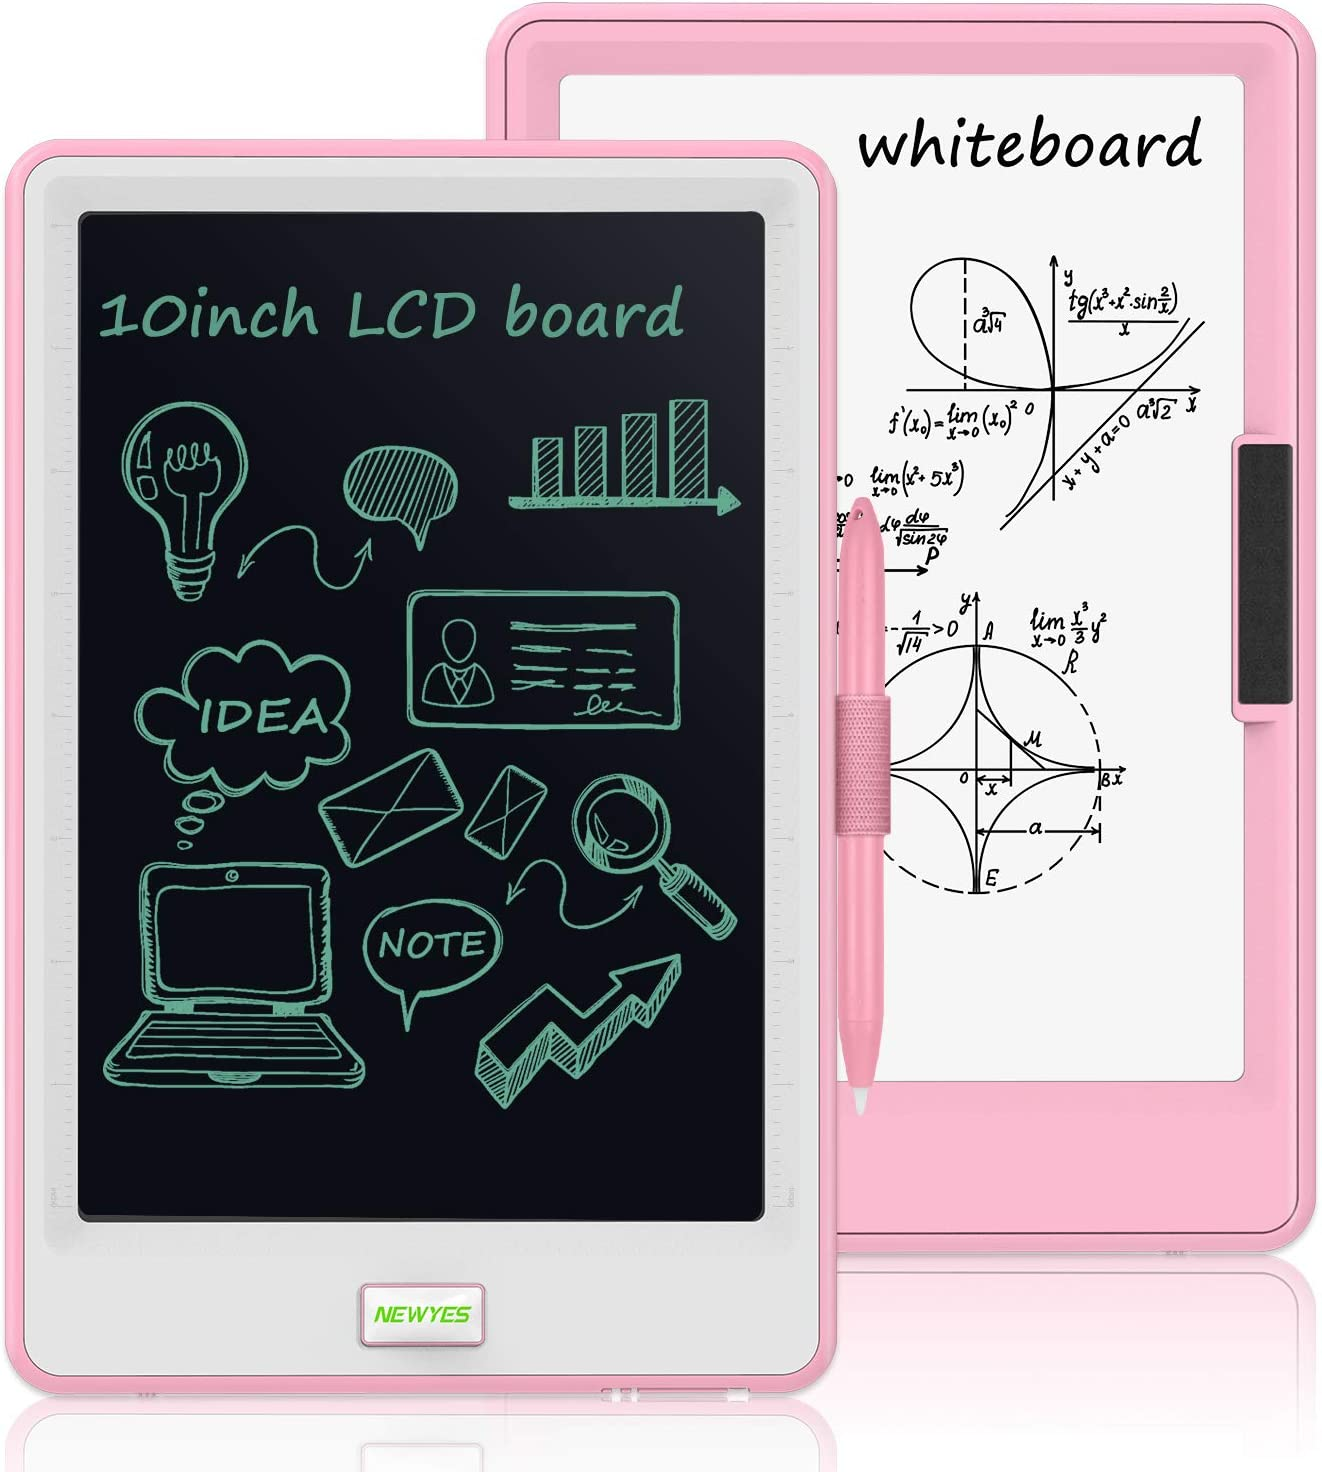 10 Inch LCD Writing Tablet, WOBEECO Electronic Drawing Tablet Kids Tablets Doodle Board Writing Pad for Kids and Adults at Home, School and Office with Lock Erase Button (Pink)